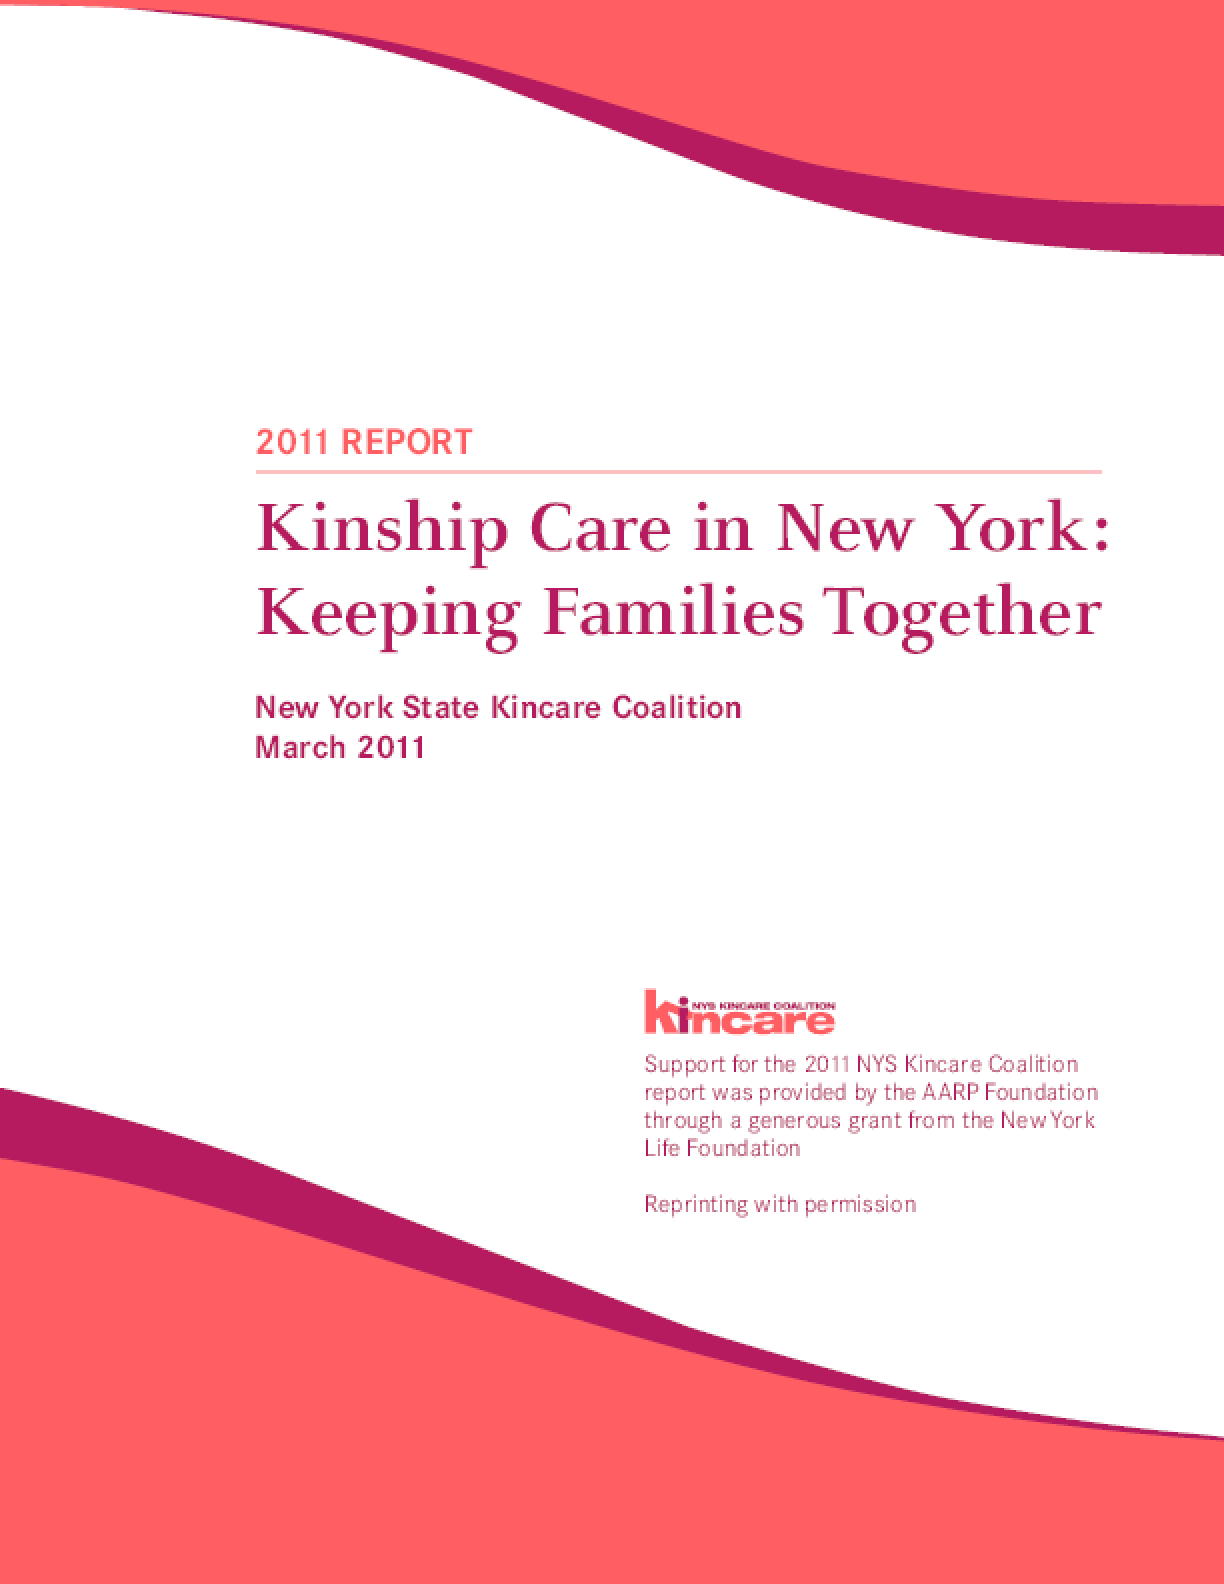 Kinship Care in New York: Keeping Families Together